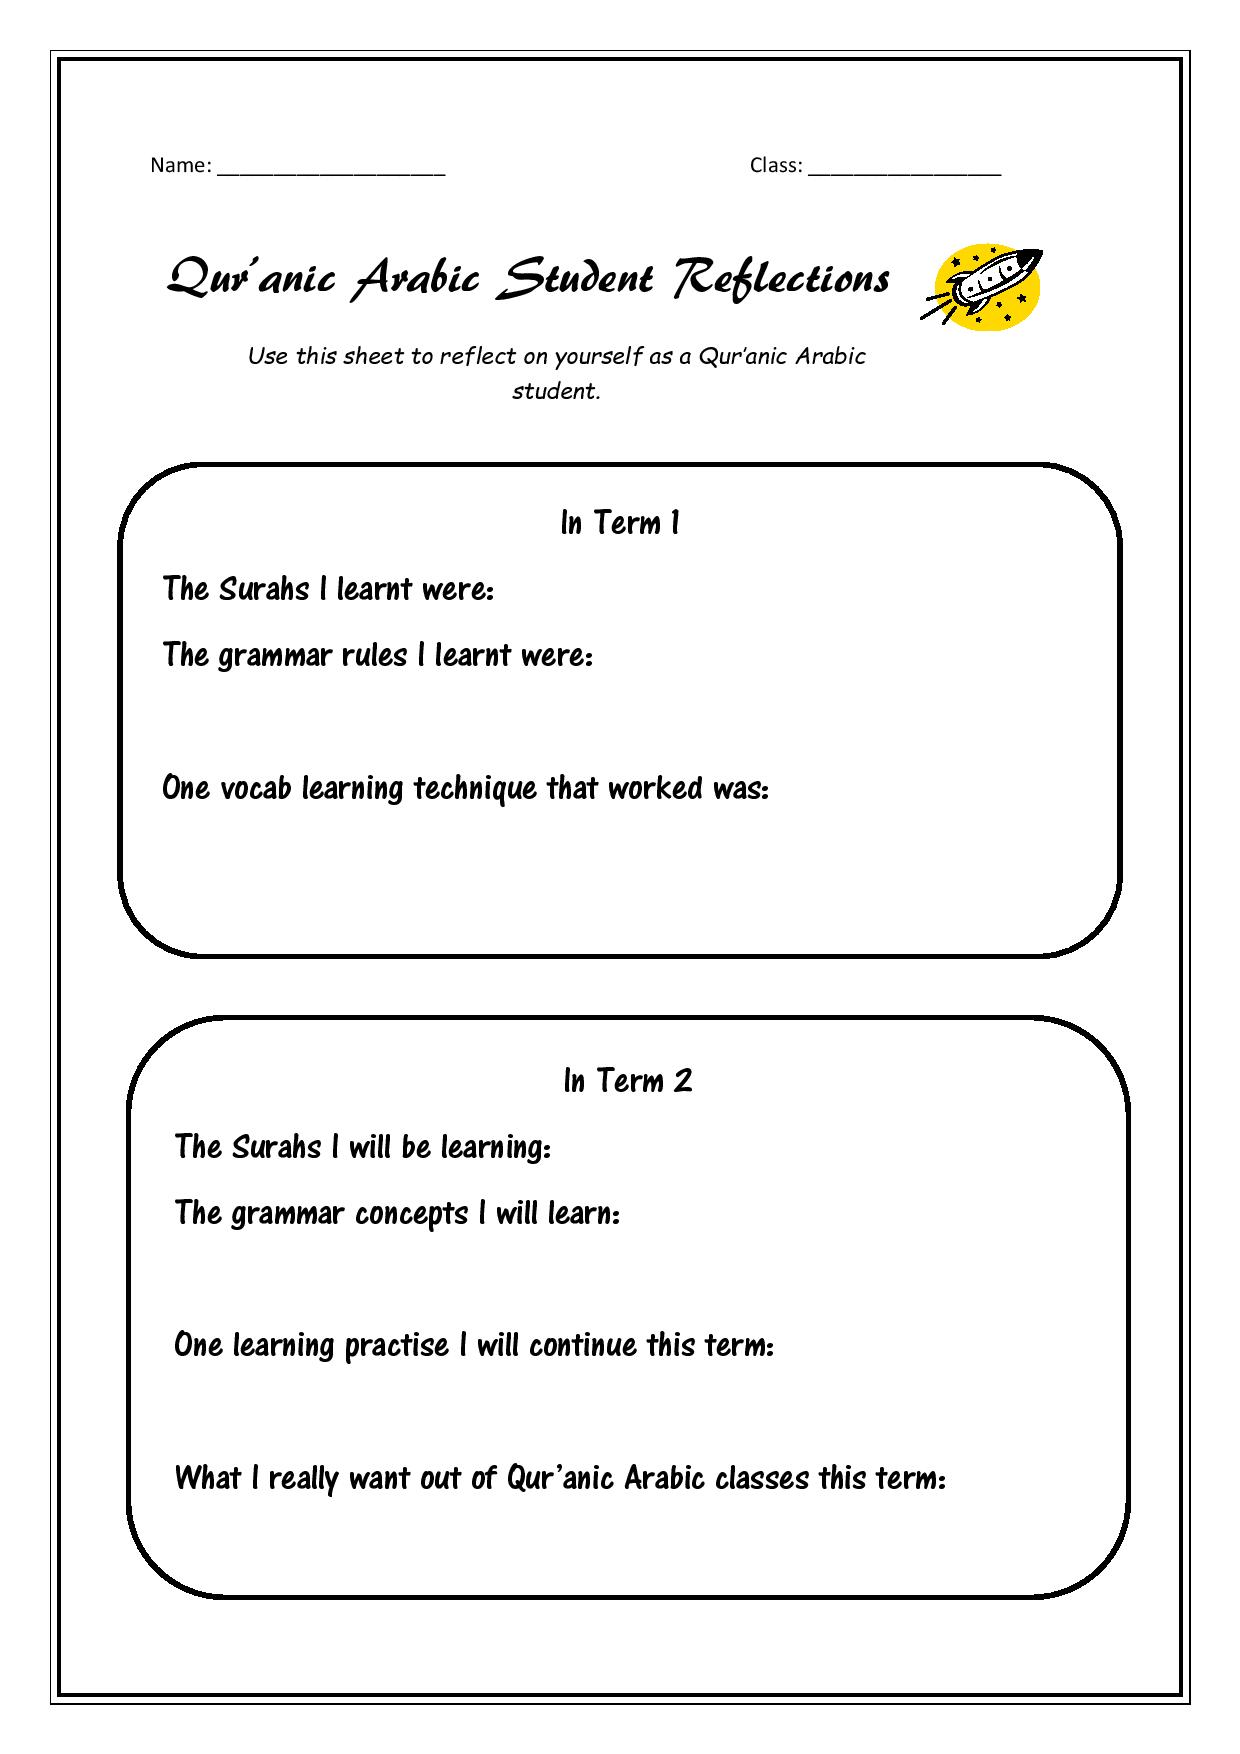 Worksheet Reflections Worksheet Grass Fedjp Worksheet